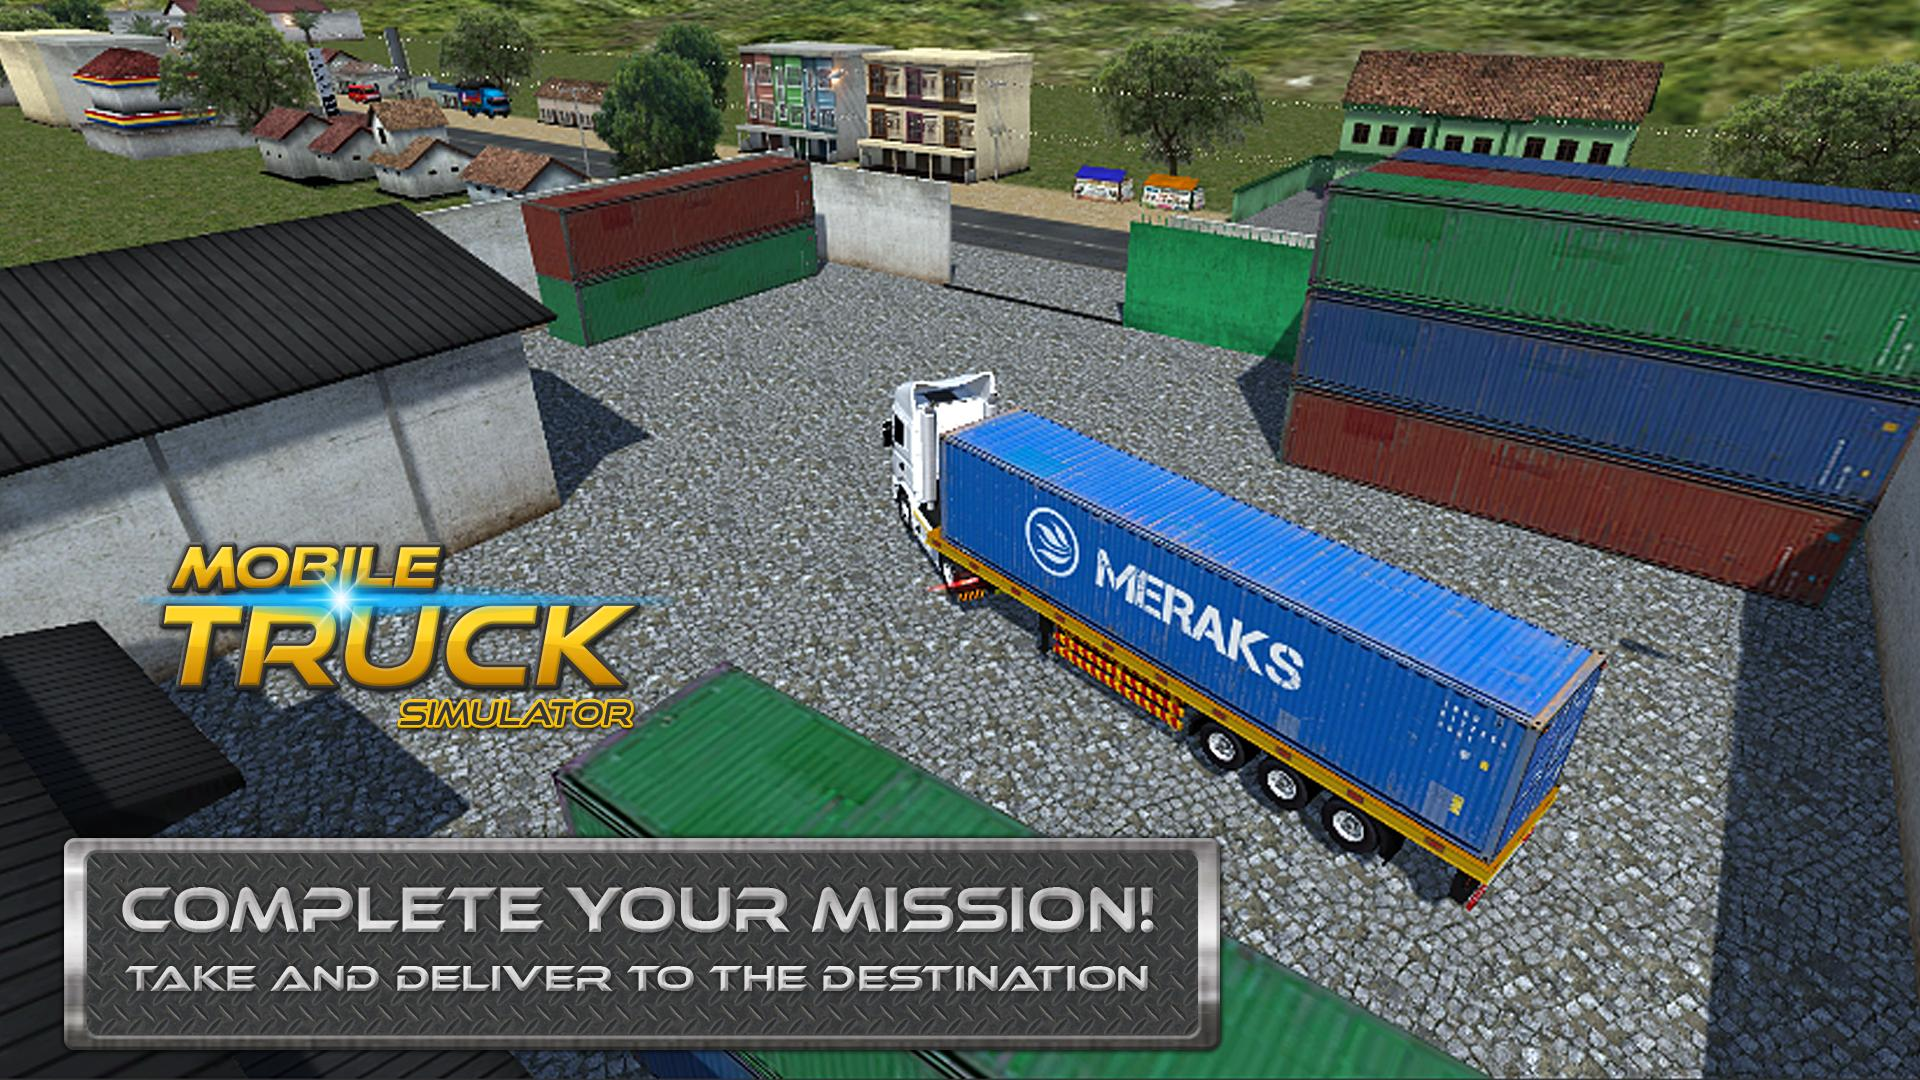 Download game a Mobile Truck Simulator